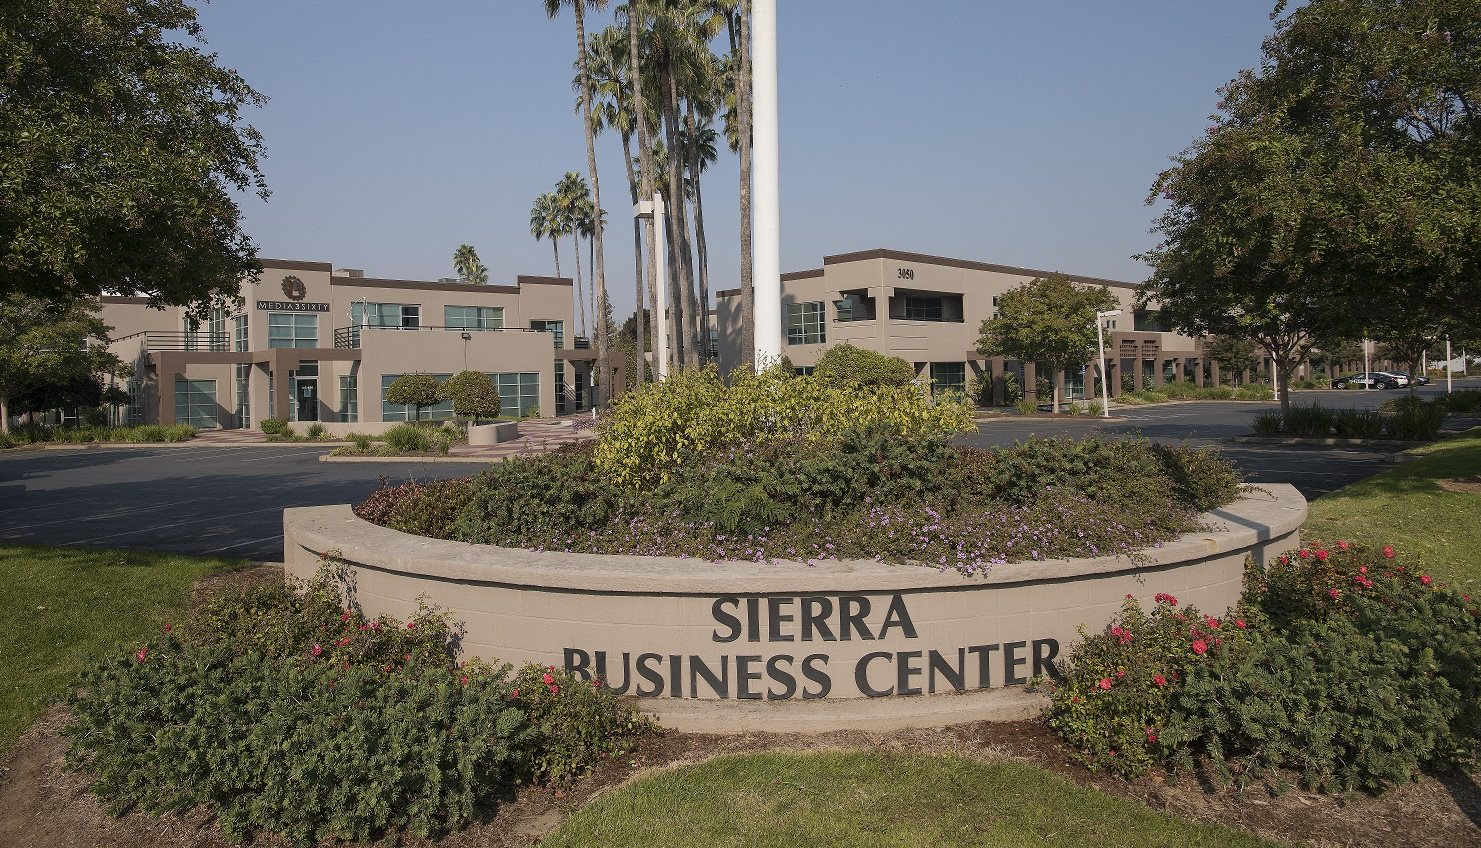 Sierra Business Center Monument Sign